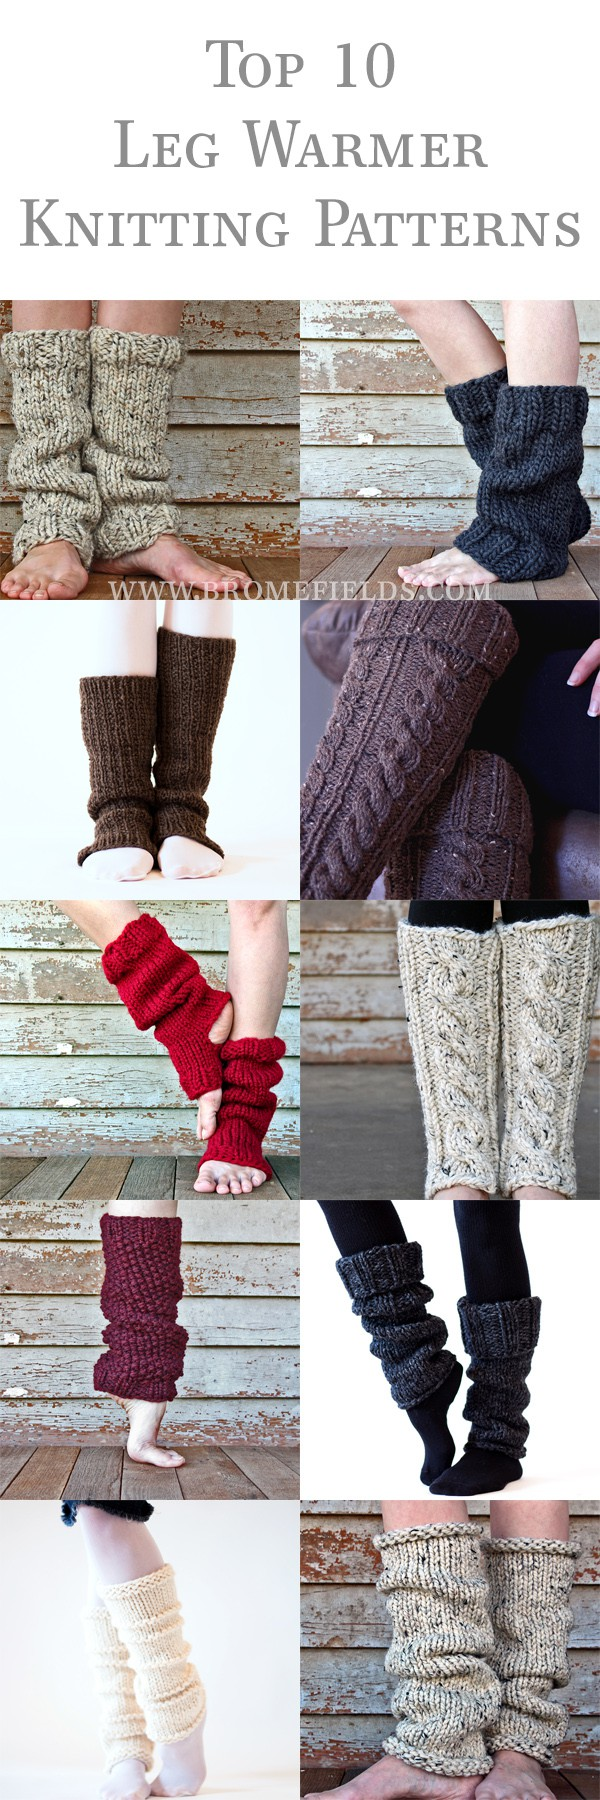 Top 10 Leg Warmer Knitting Patterns - Brome Fields